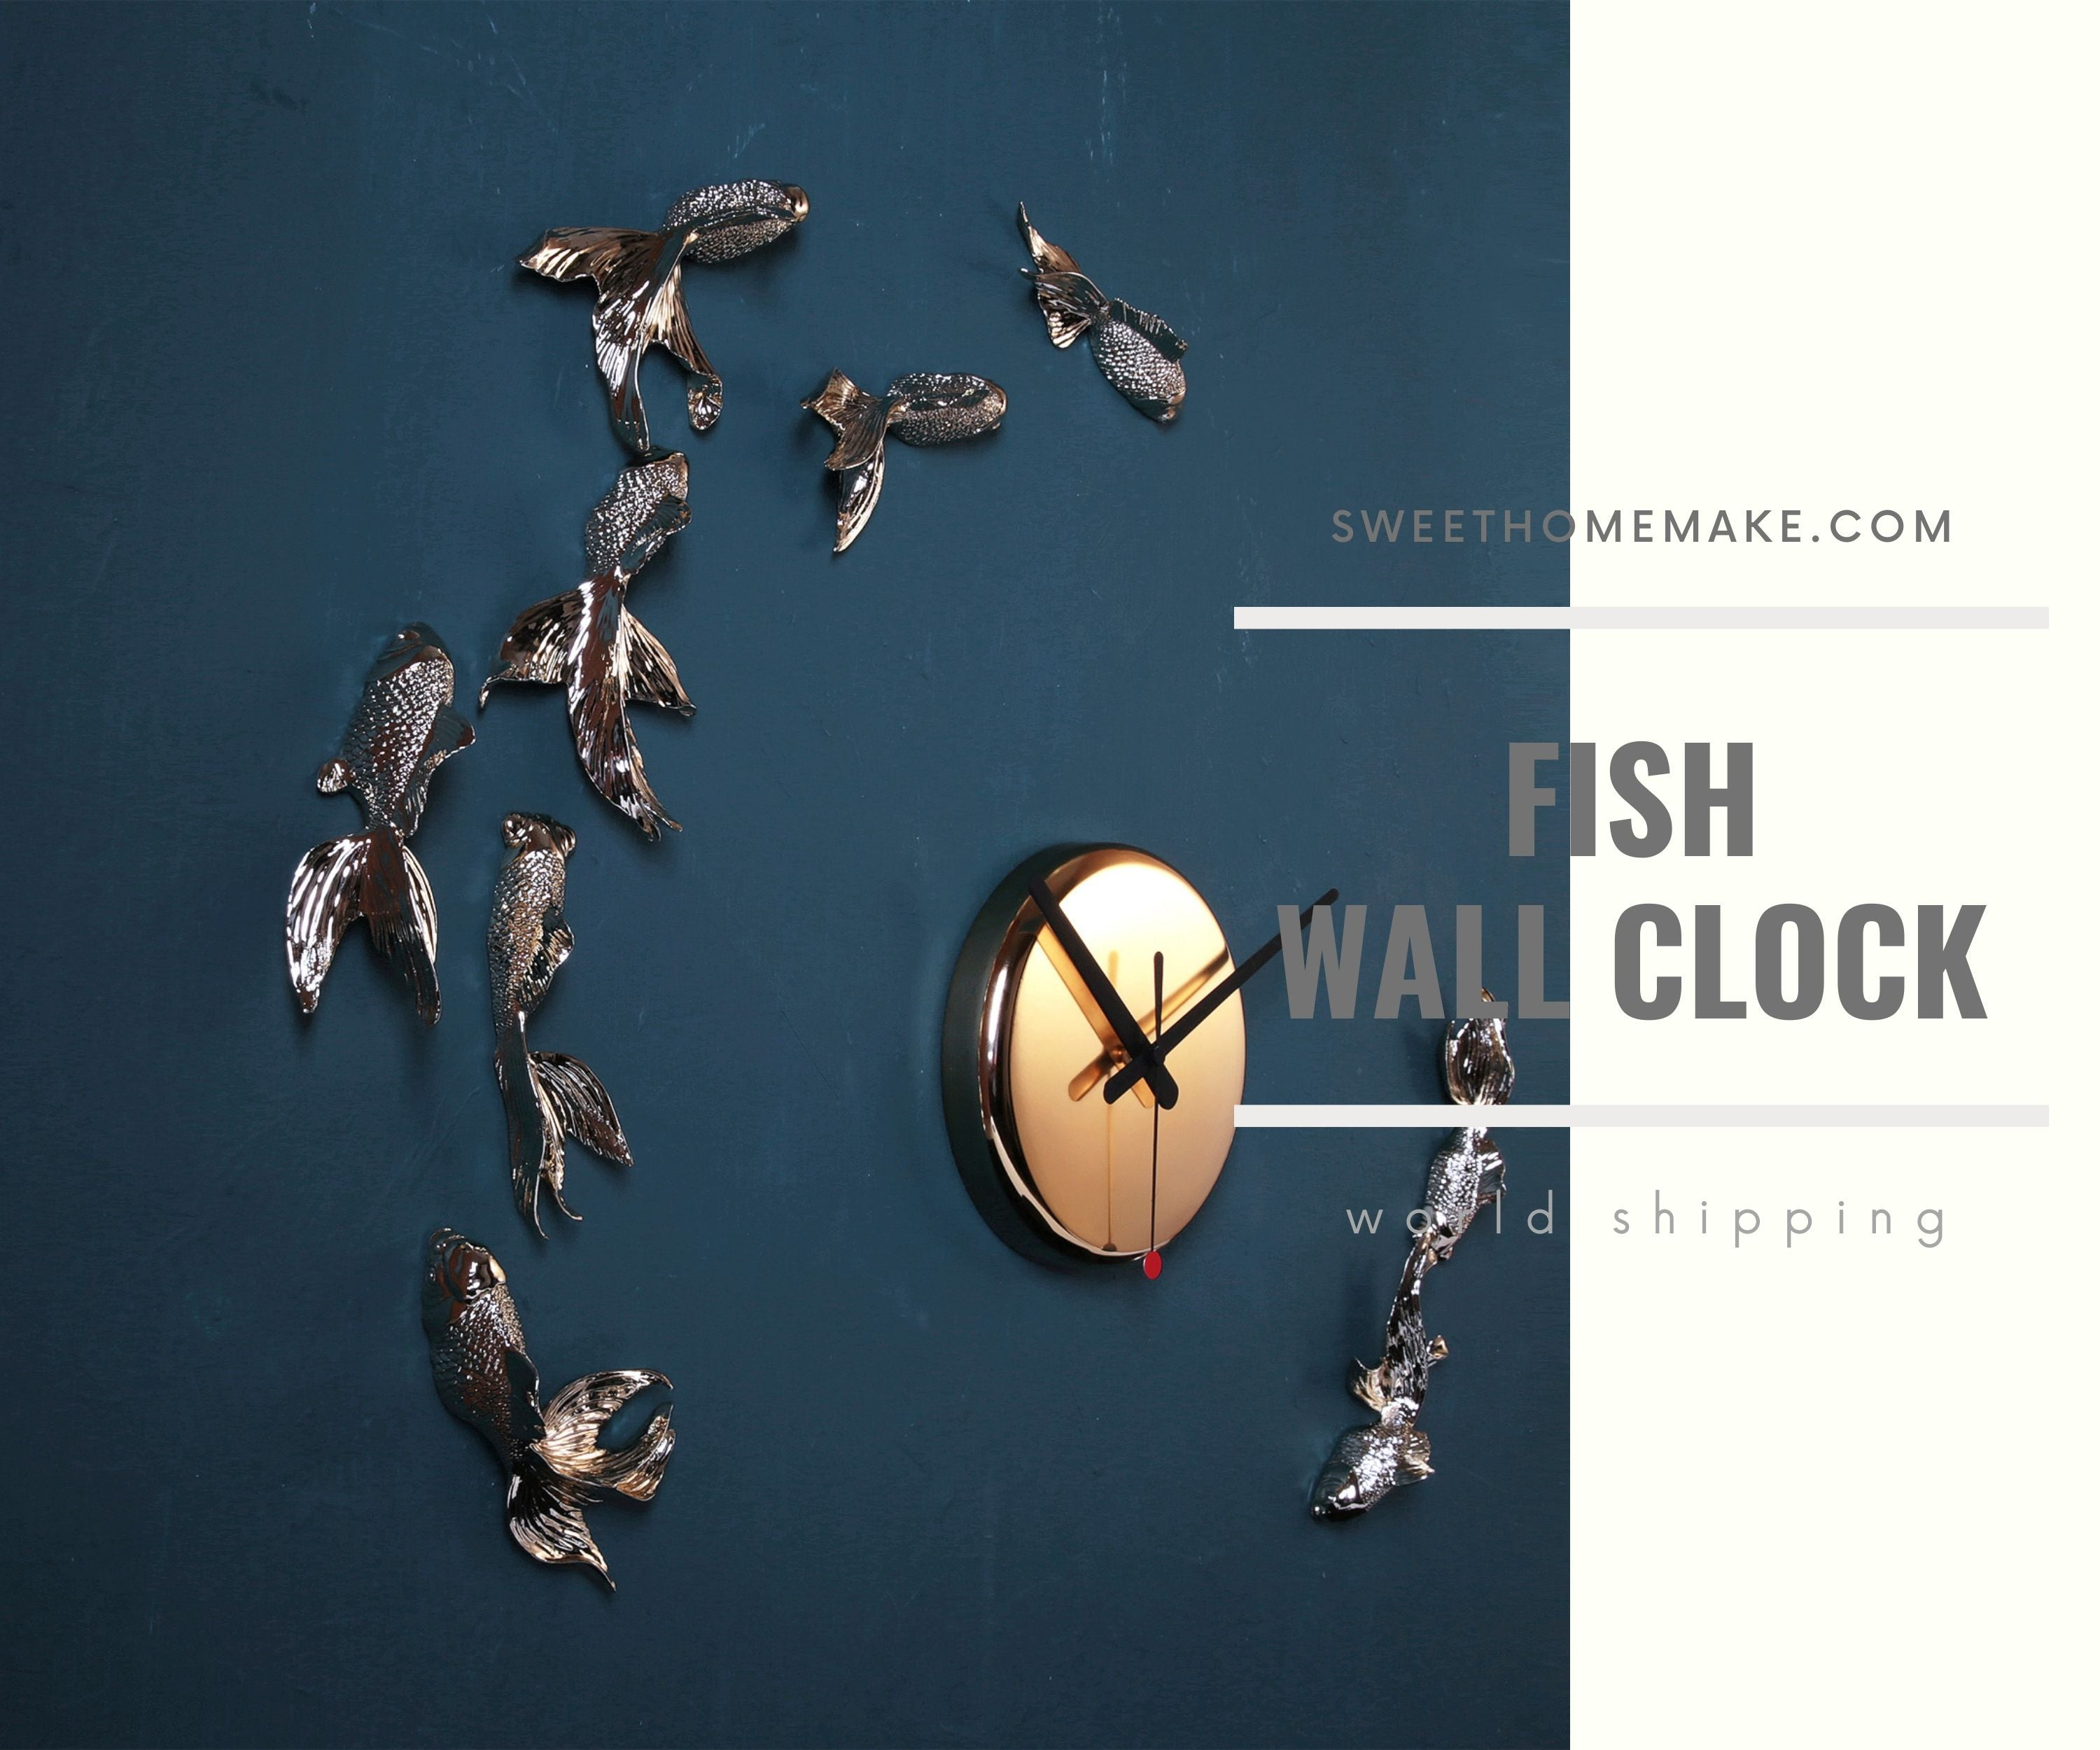 Fish Wall Clock and time remind us to be planned and stylish